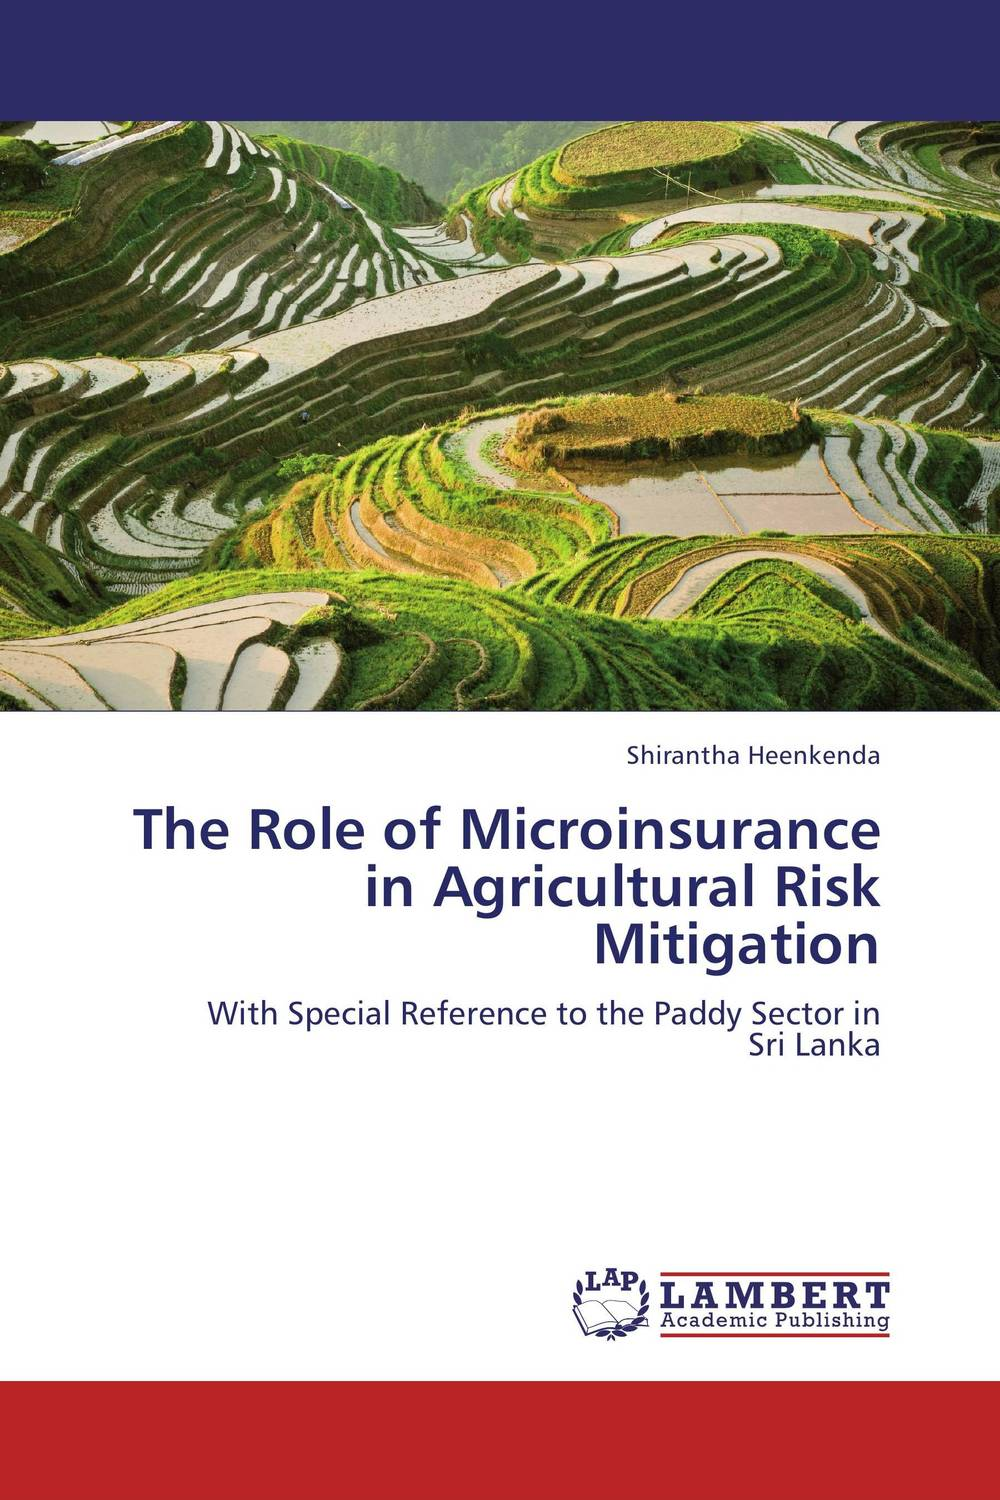 The Role of Microinsurance in Agricultural Risk Mitigation constantin zopounidis quantitative financial risk management theory and practice